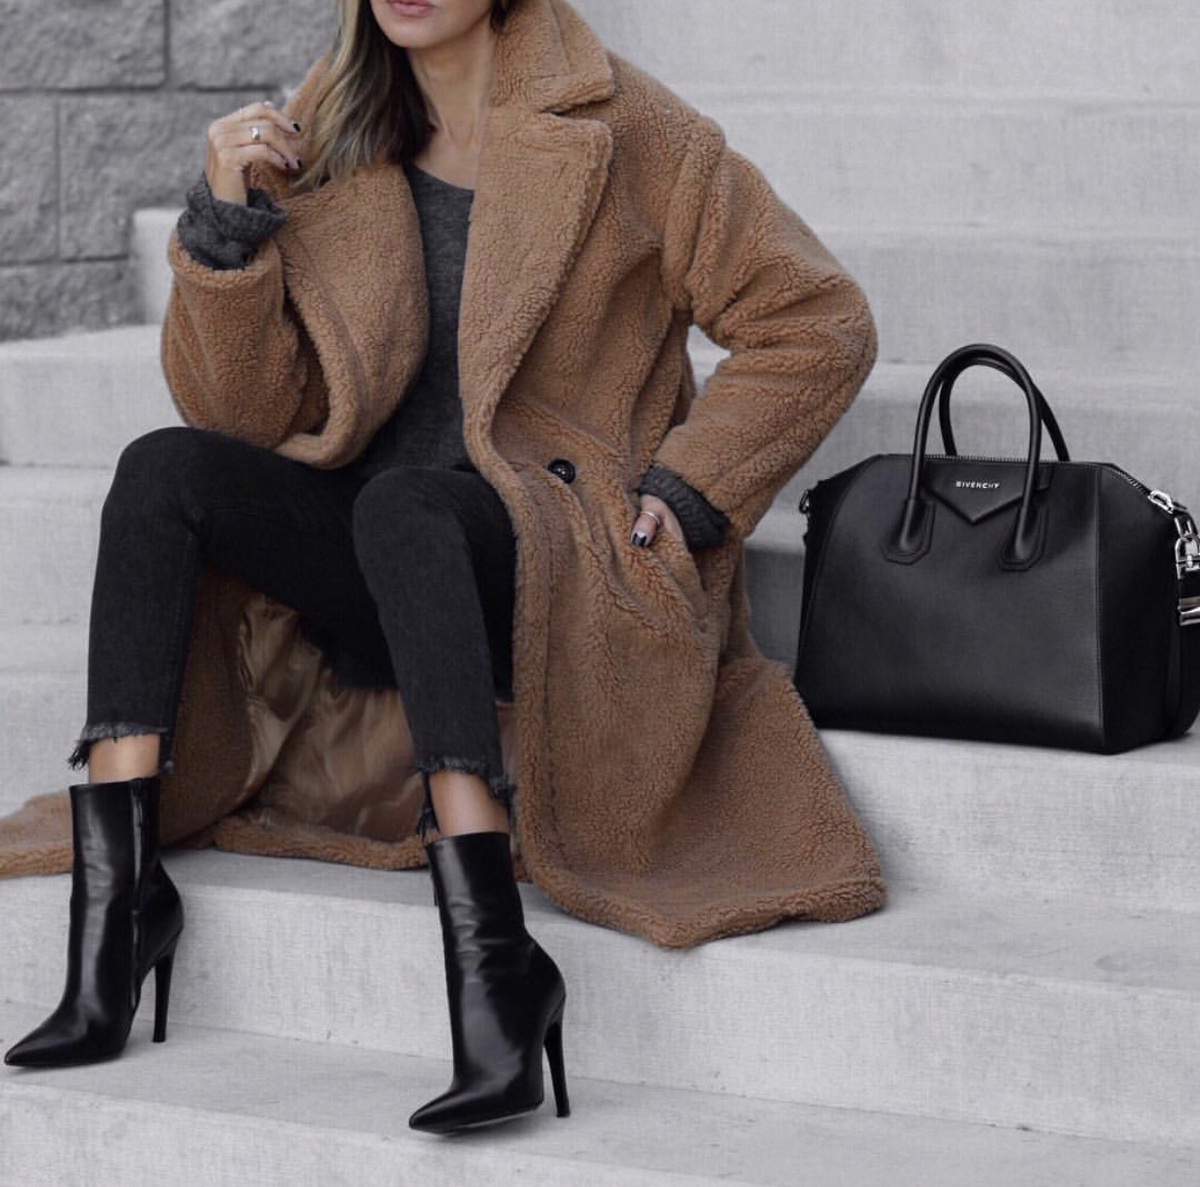 Coats Every Woman Should Own, teddy coat, fall outfit inspiration by lolario style | lolariostyle.com